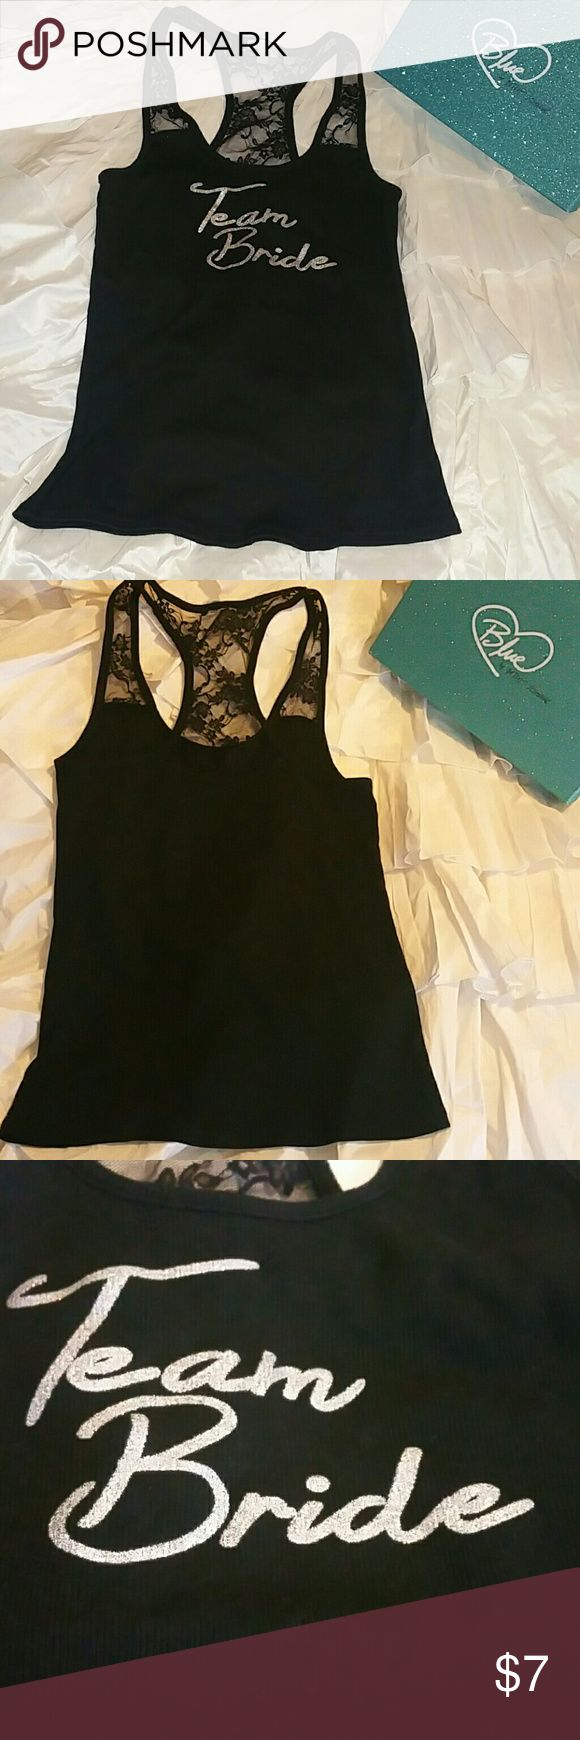 "Betsey Johnson ""Team Bride"" tank top Black ribbed tank top with lace razorback. Team Bride written on front of shirt. Betsey Johnson Tops Tank Tops"